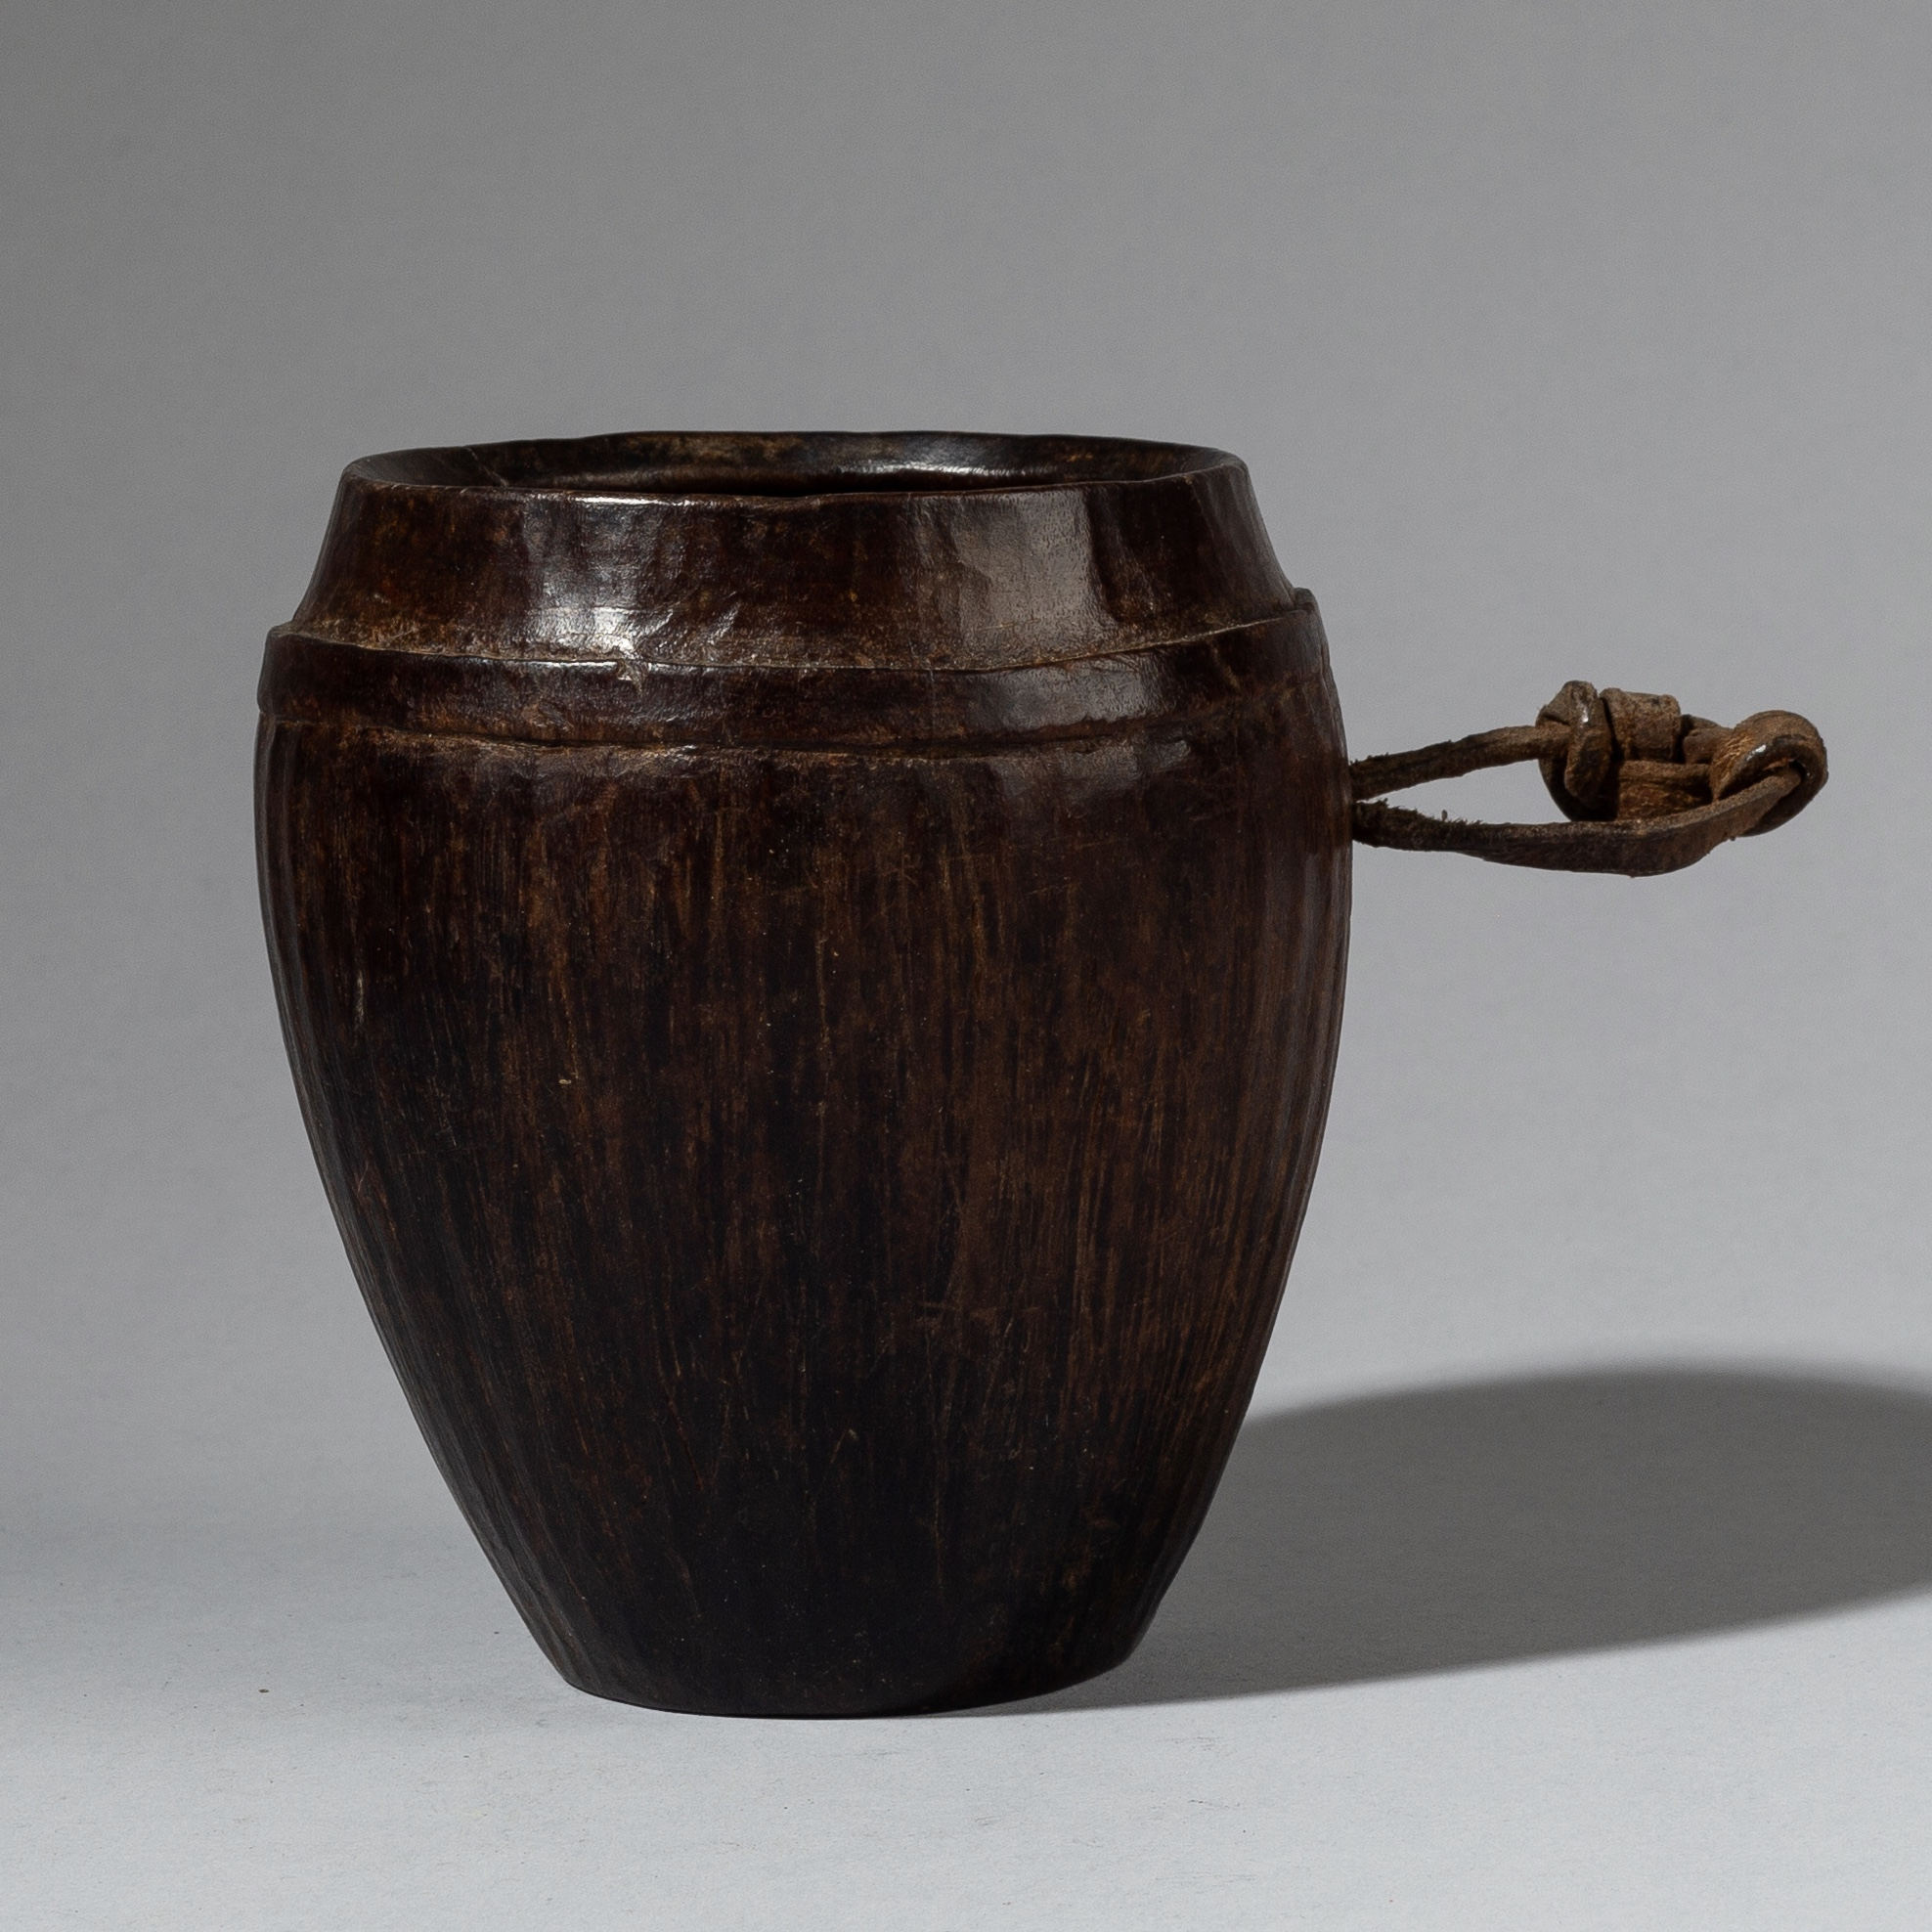 AN ADZE MARK WOODEN MARK CUP FROM ETHIOPIA ( No 2989 )